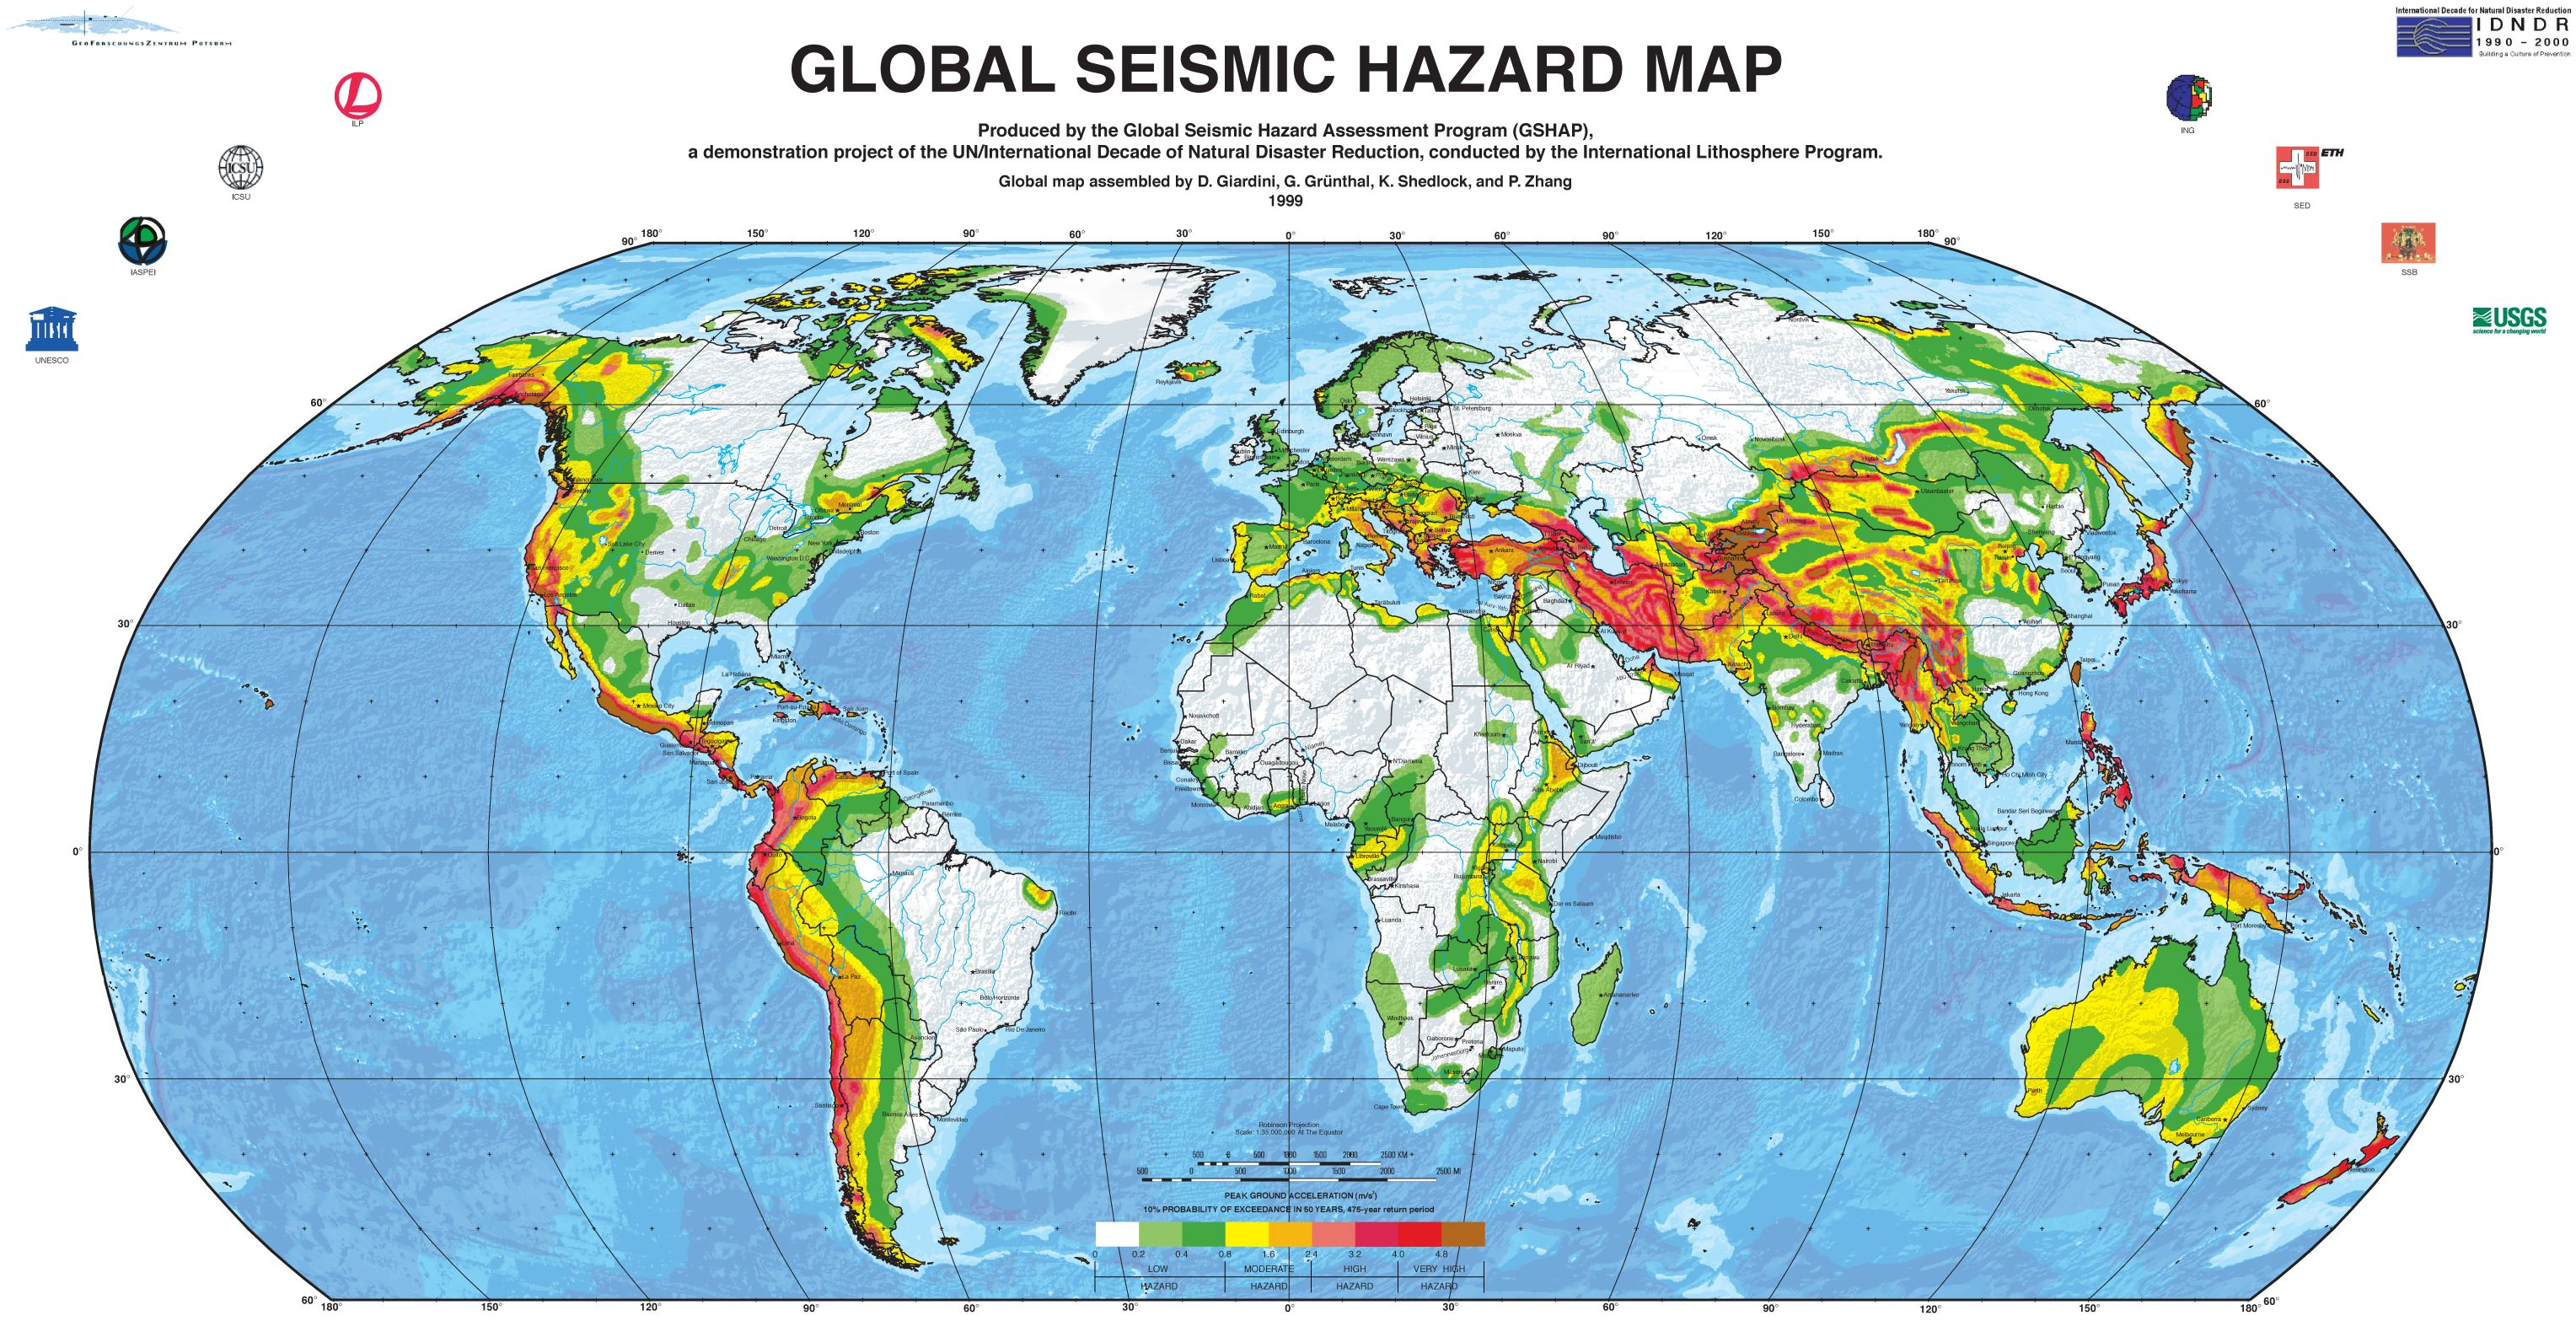 Science And Technology Major Fault S In The US Versus The - Seismic map of us